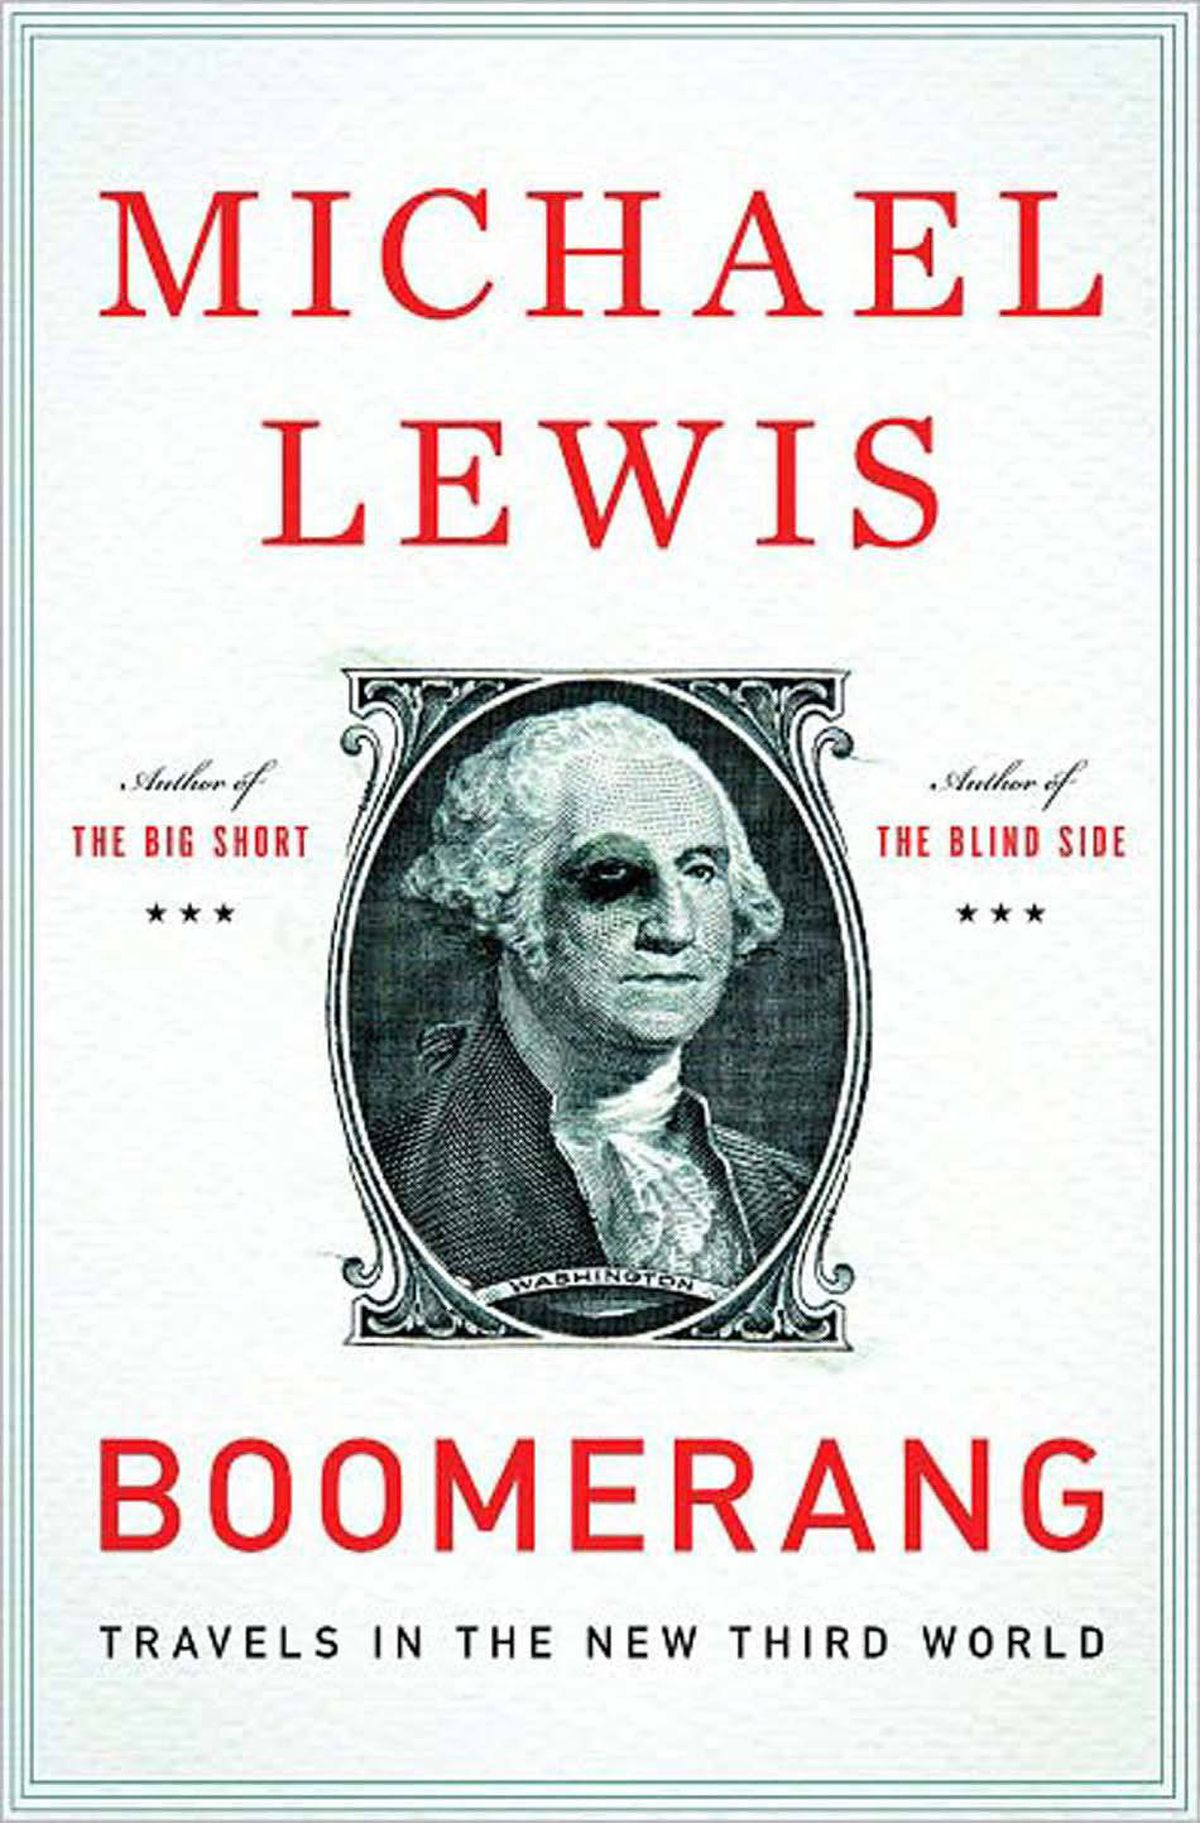 BOOMERANG Travels in the New Third World By Michael Lewis (Norton) Lewis's guided tour of the world's economic ruins is a bit like hiking through remote gastronomic regions with Anthony Bourdain. Like Bourdain, he gets up close and personal with the economic meltdown, and applies a biting wit that infuses a rare pleasure into the unpleasant business of digesting grim economic tales. – Jacquie McNish